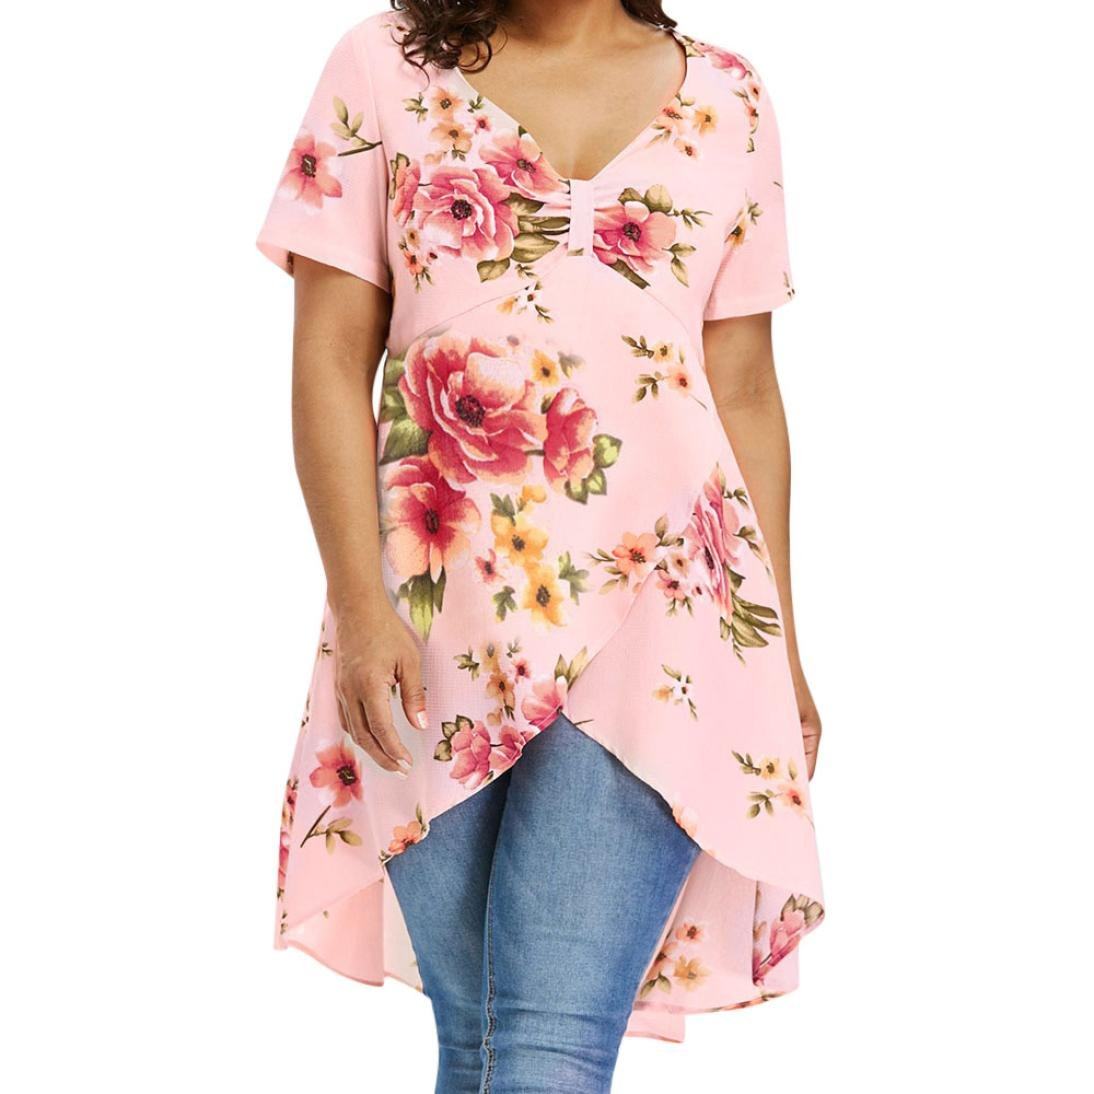 Women Plus Size Sexy V Neck Floral T Shirt Short Sleeve Asymmetrical Printed Tees Top (Pink, L)